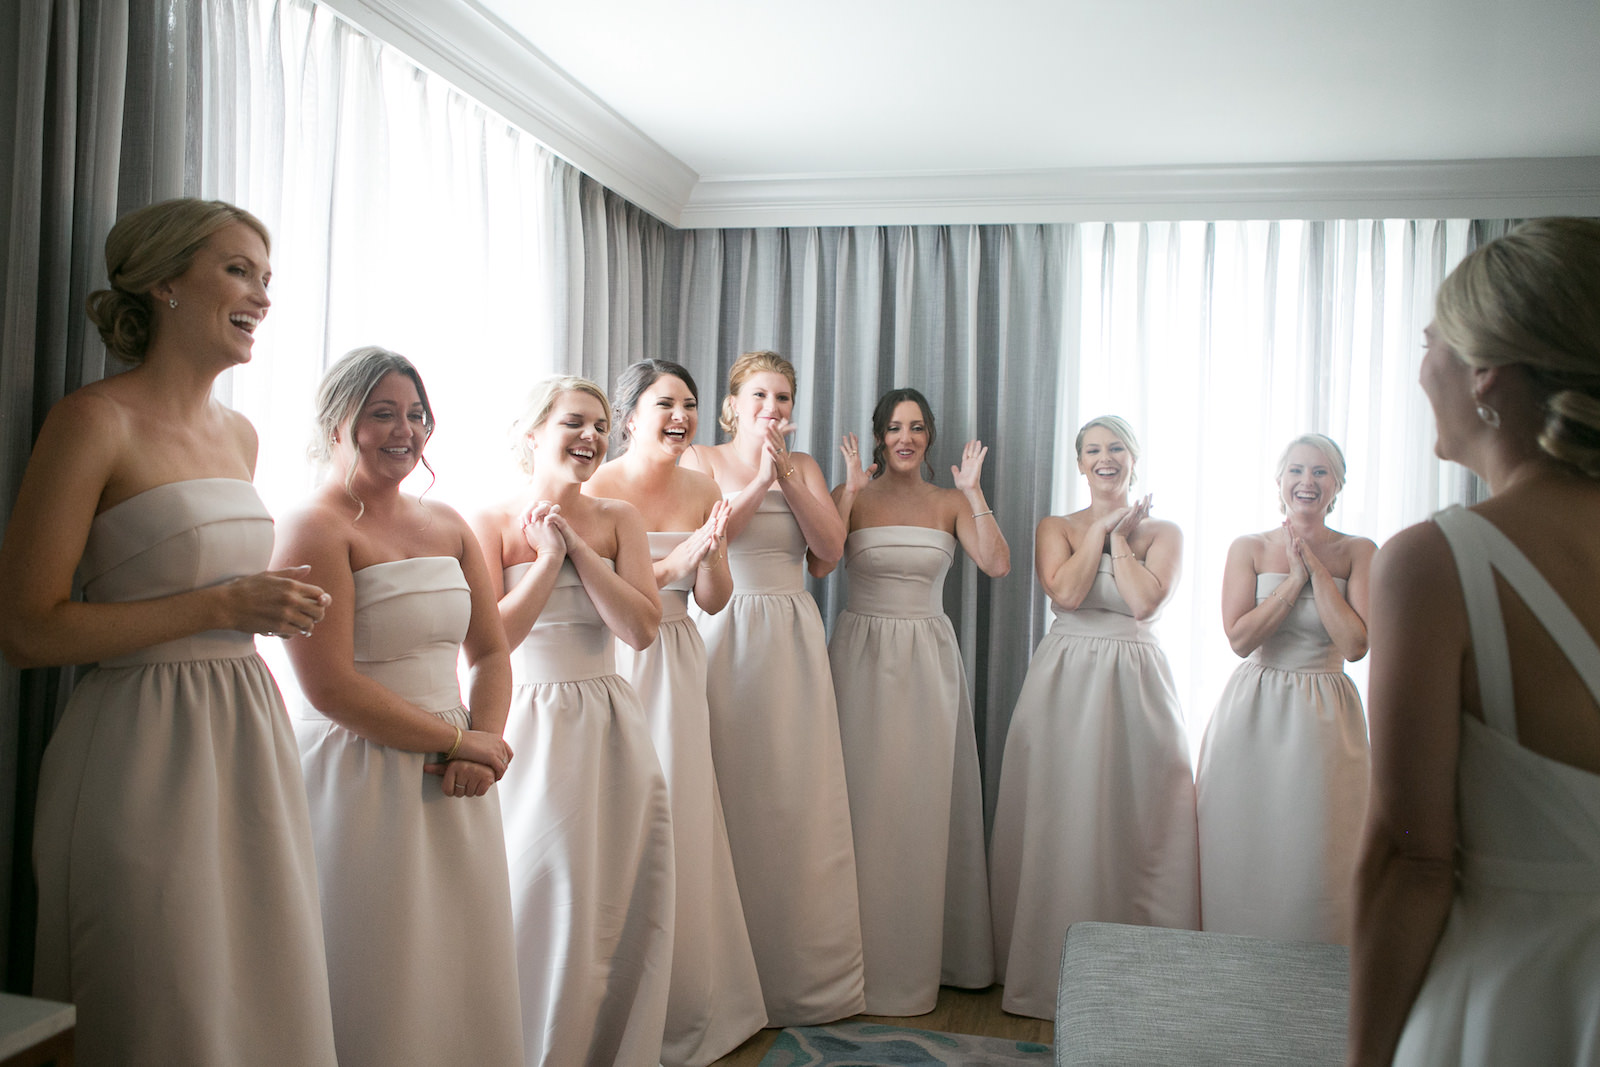 Bride First Look with Bridesmaids | Strapless Taupe Neutral Bridesmaid Dresses by Amsale | Carrie Wildes Photography